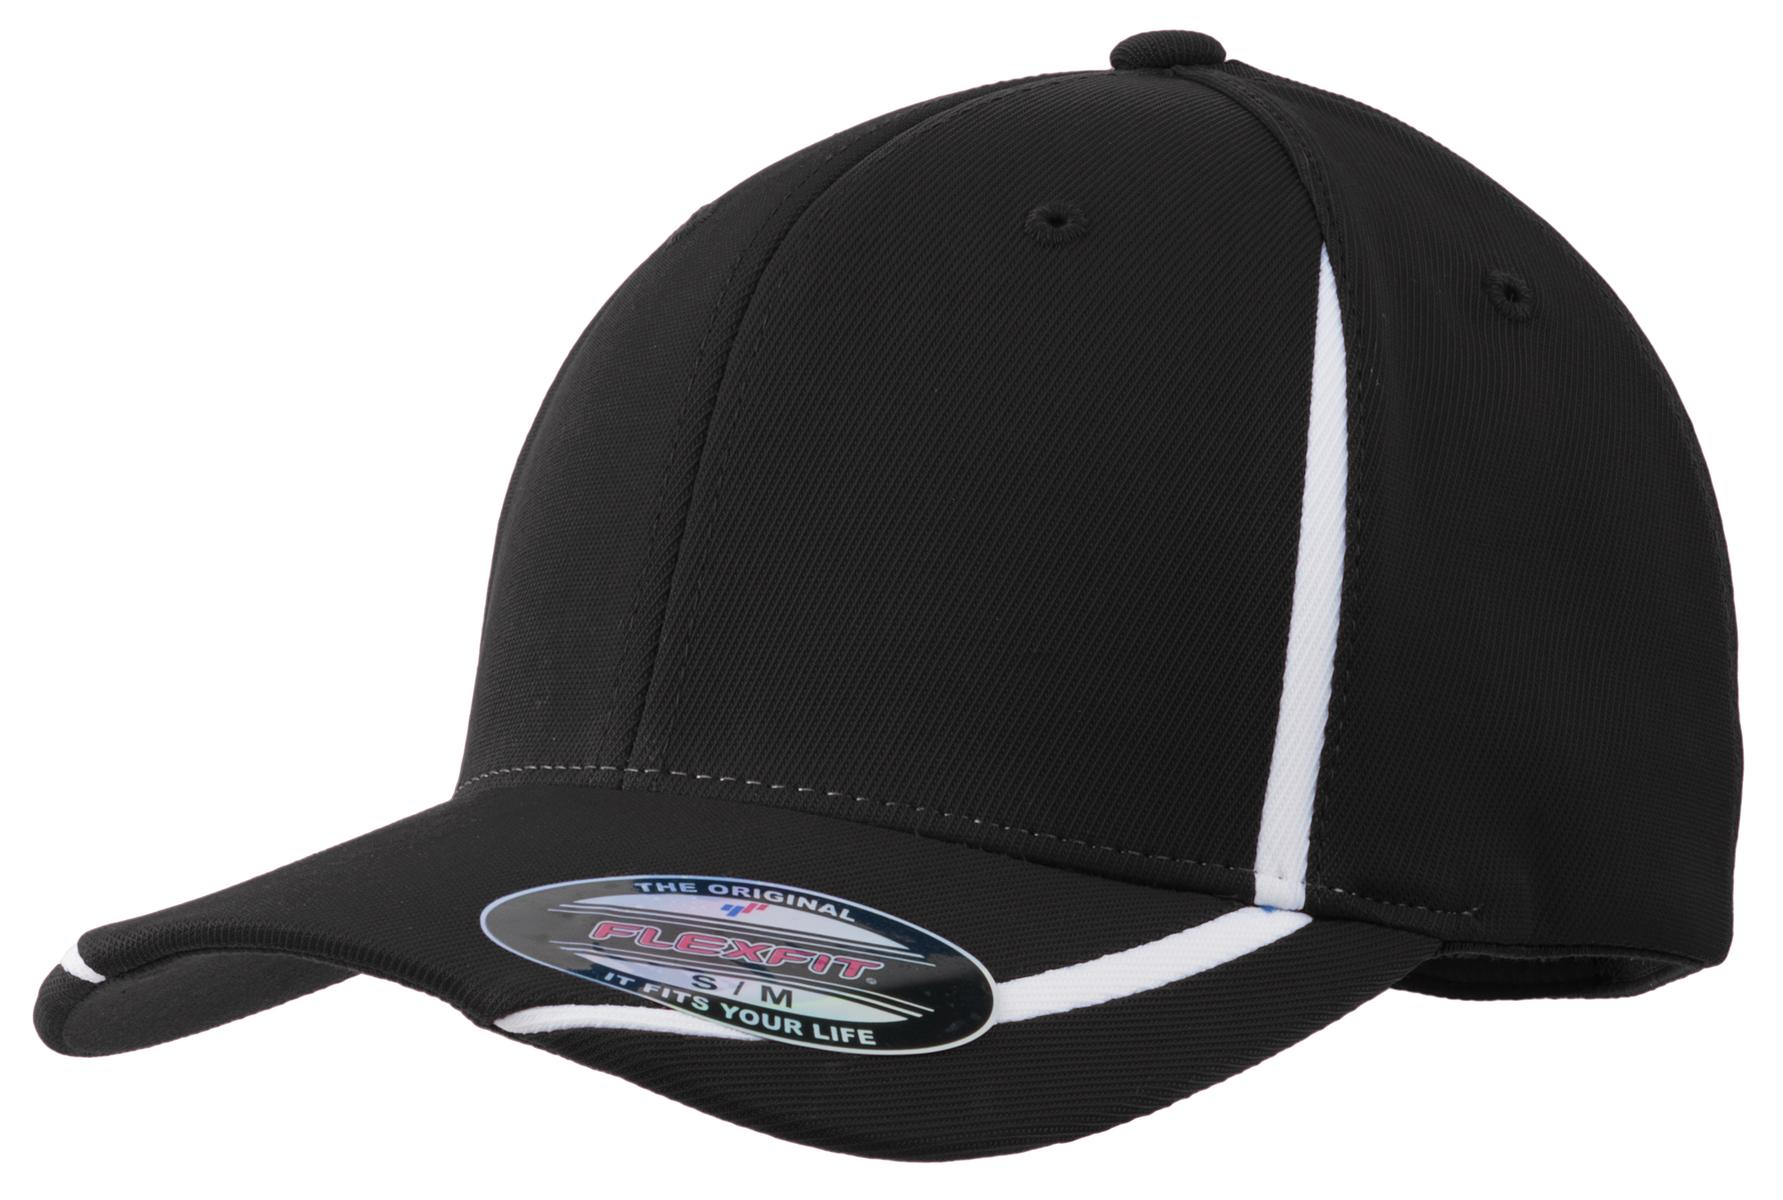 Sport-Tek ®  Flexfit ®  Performance Colorblock Cap. STC16 - Black/White